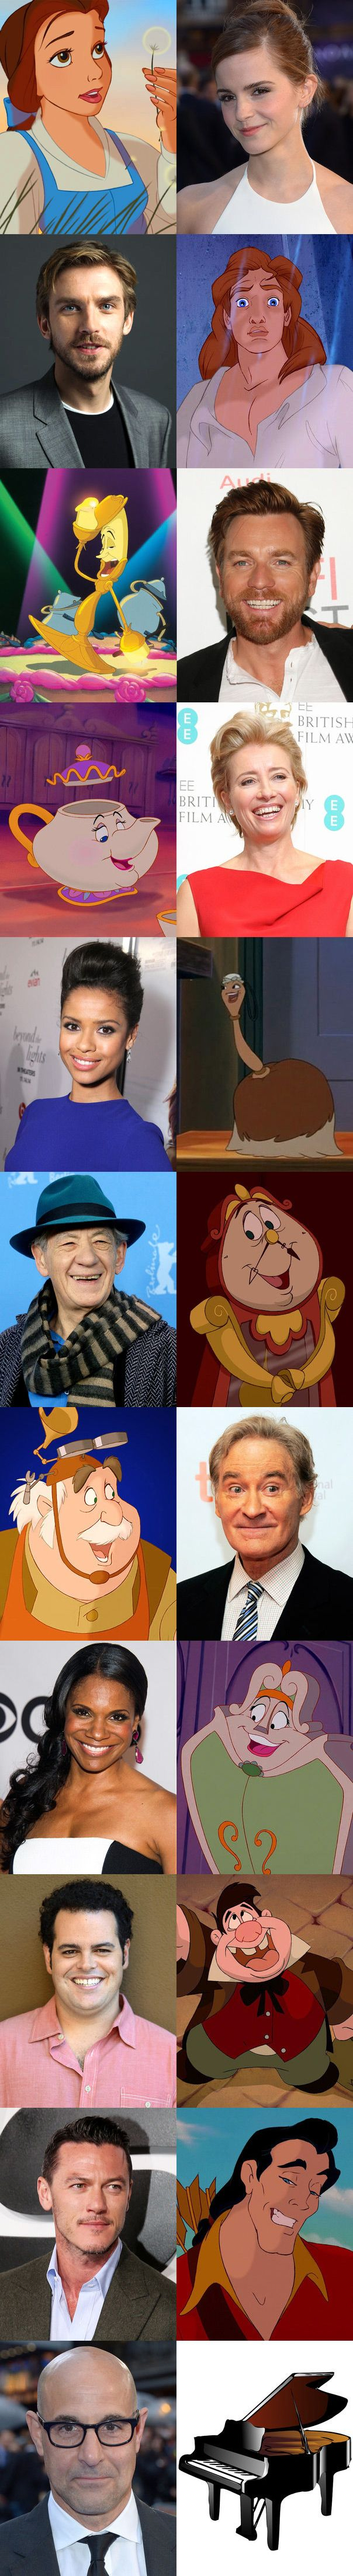 The cast of Disney's live-action Beauty and the Beast movie (March 2017).